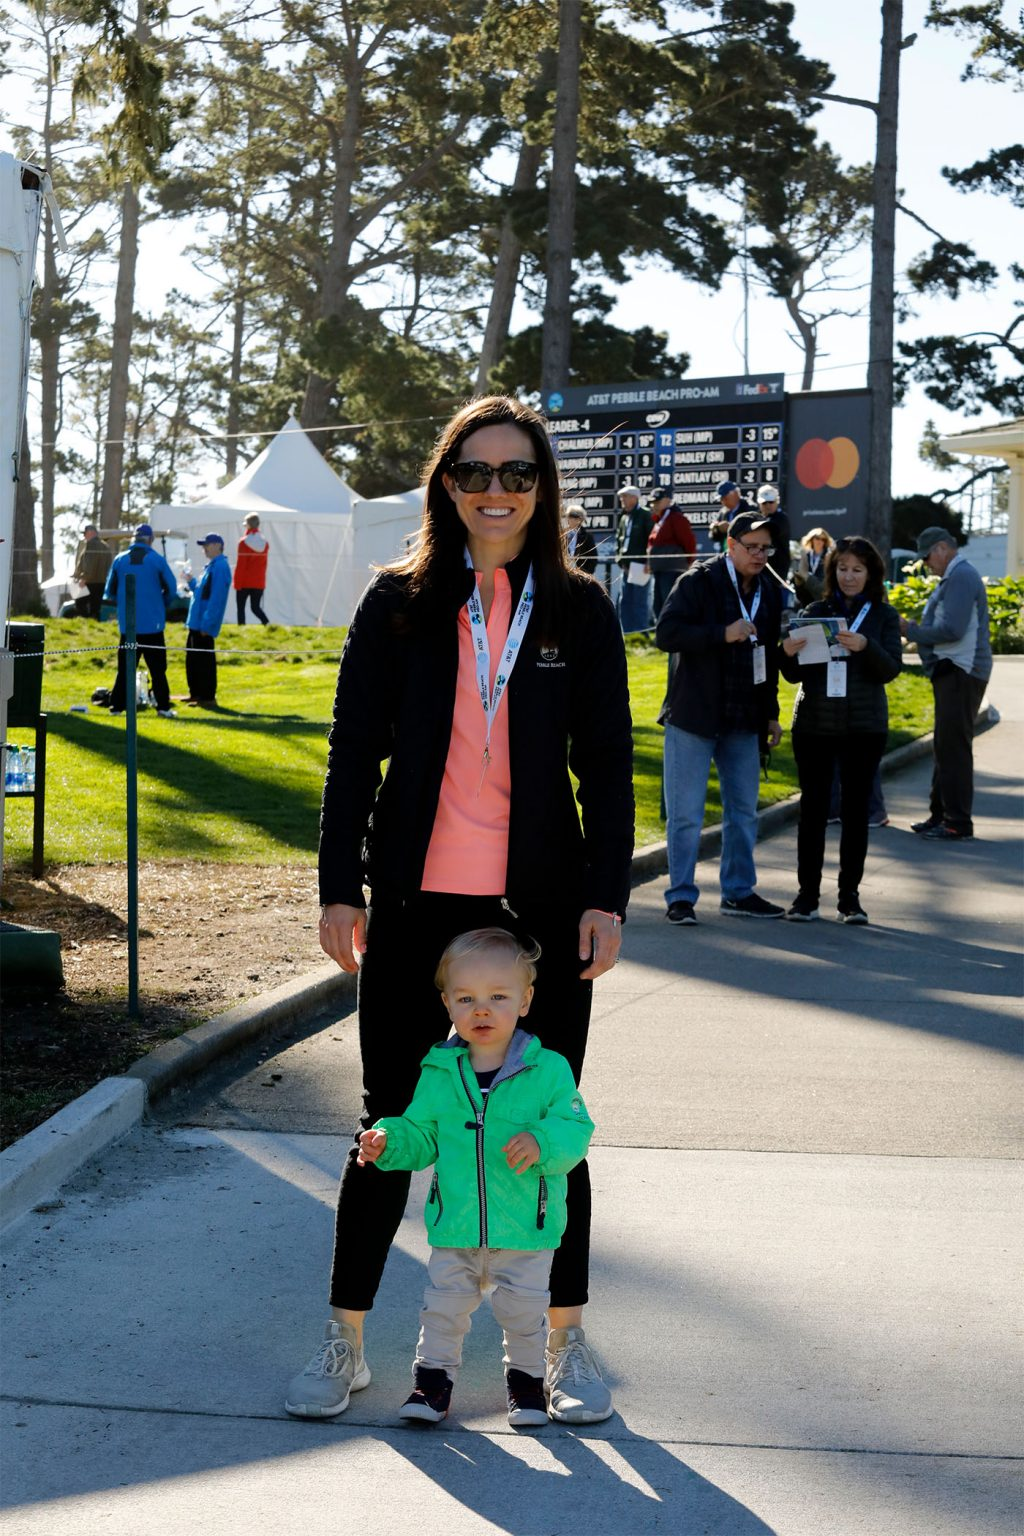 Fans at the 2020 AT&T Pebble Beach Pro-Am